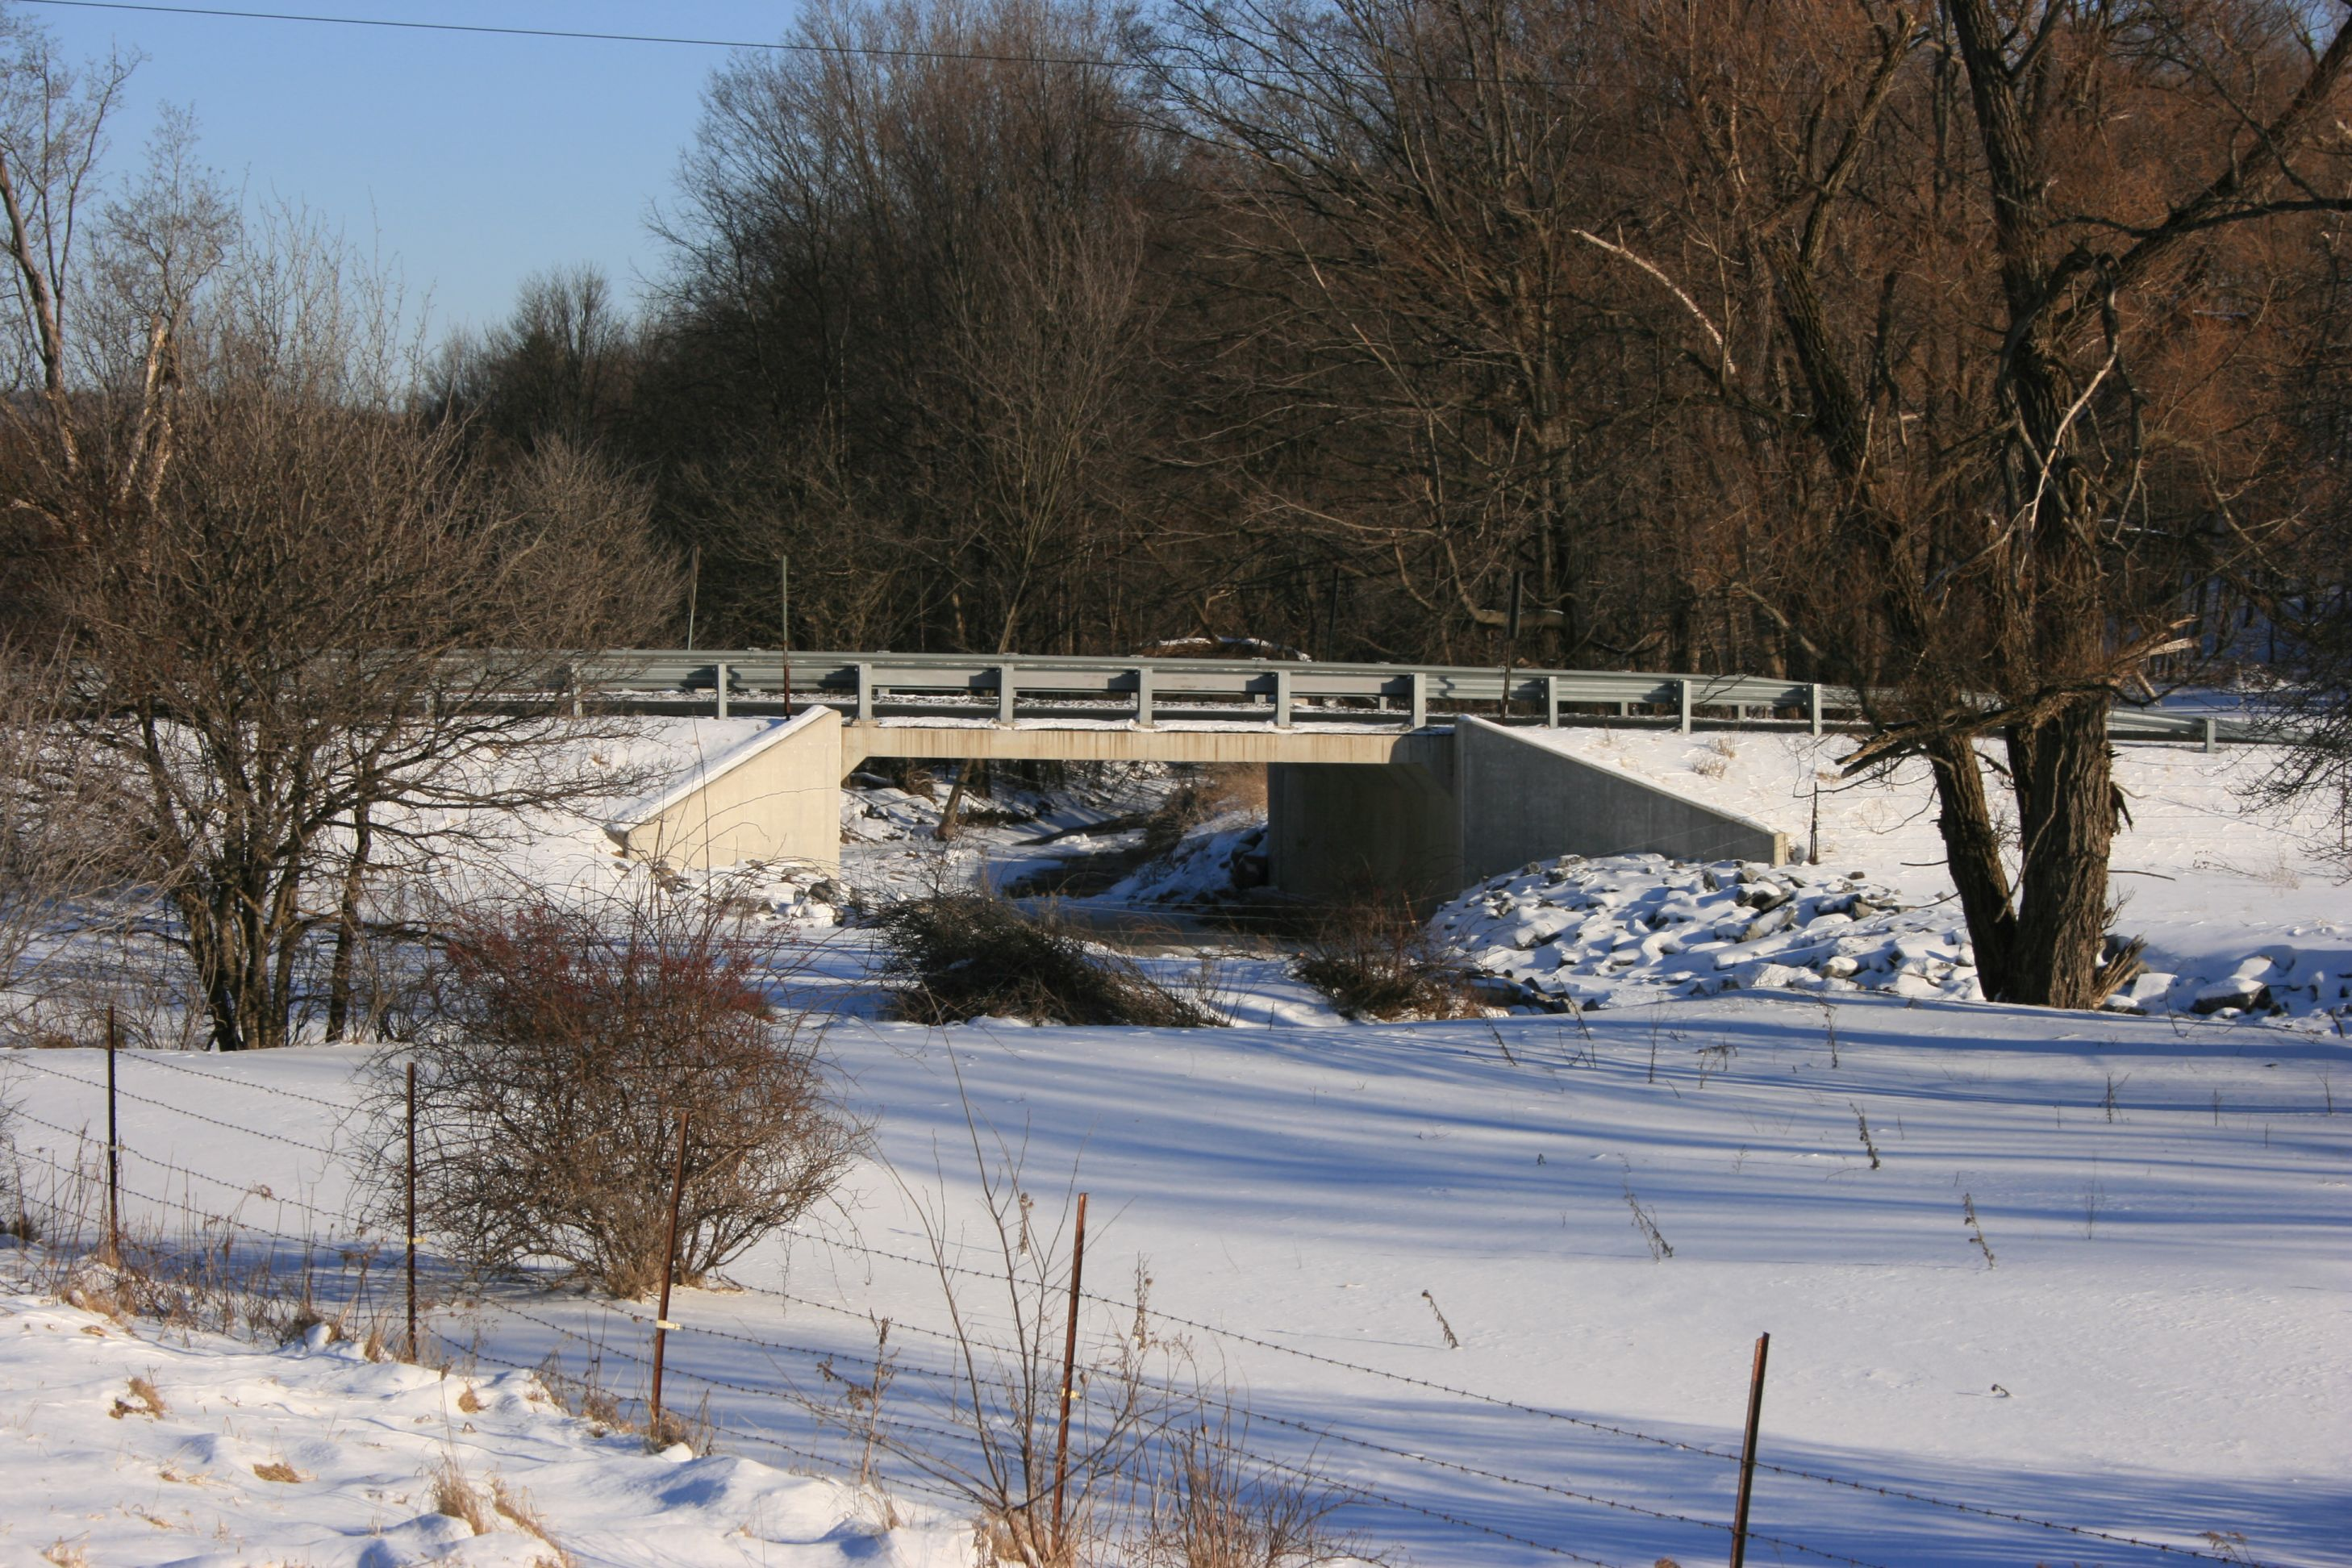 Town of Dix Bridge Design After